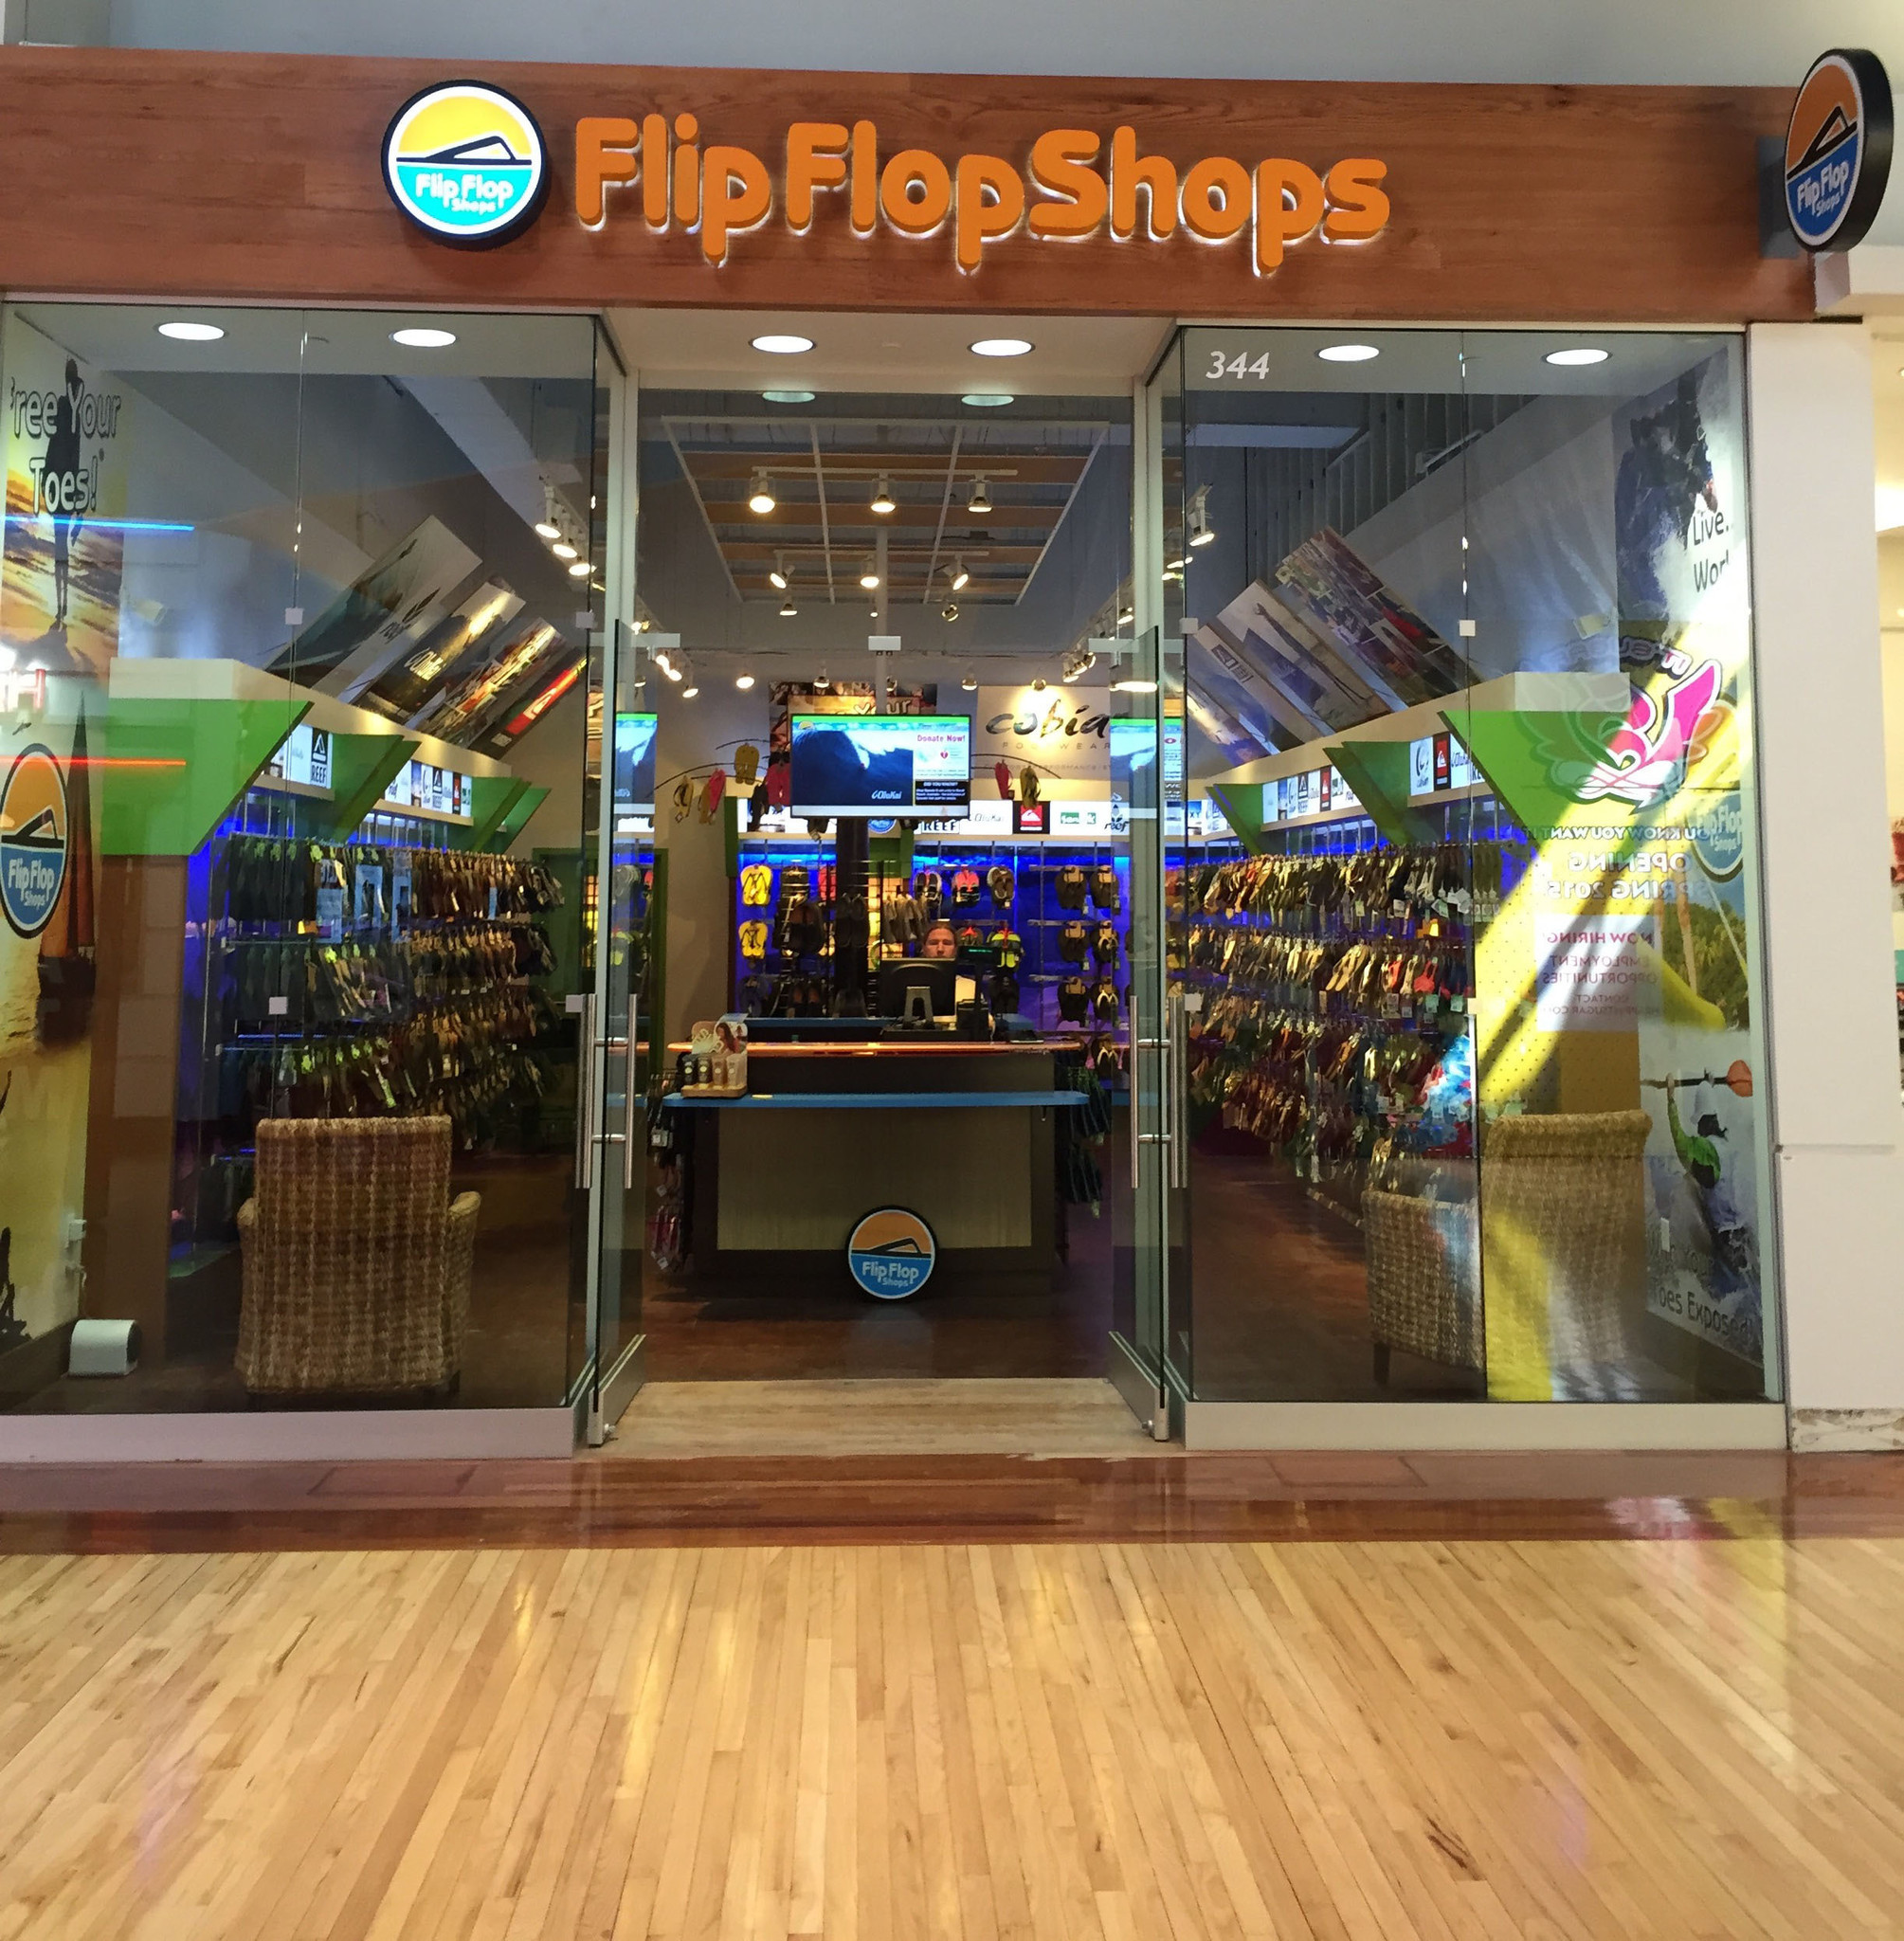 95bef2ec21c1 Flip Flop Shops coming to Arundel Mills mall - Baltimore Sun